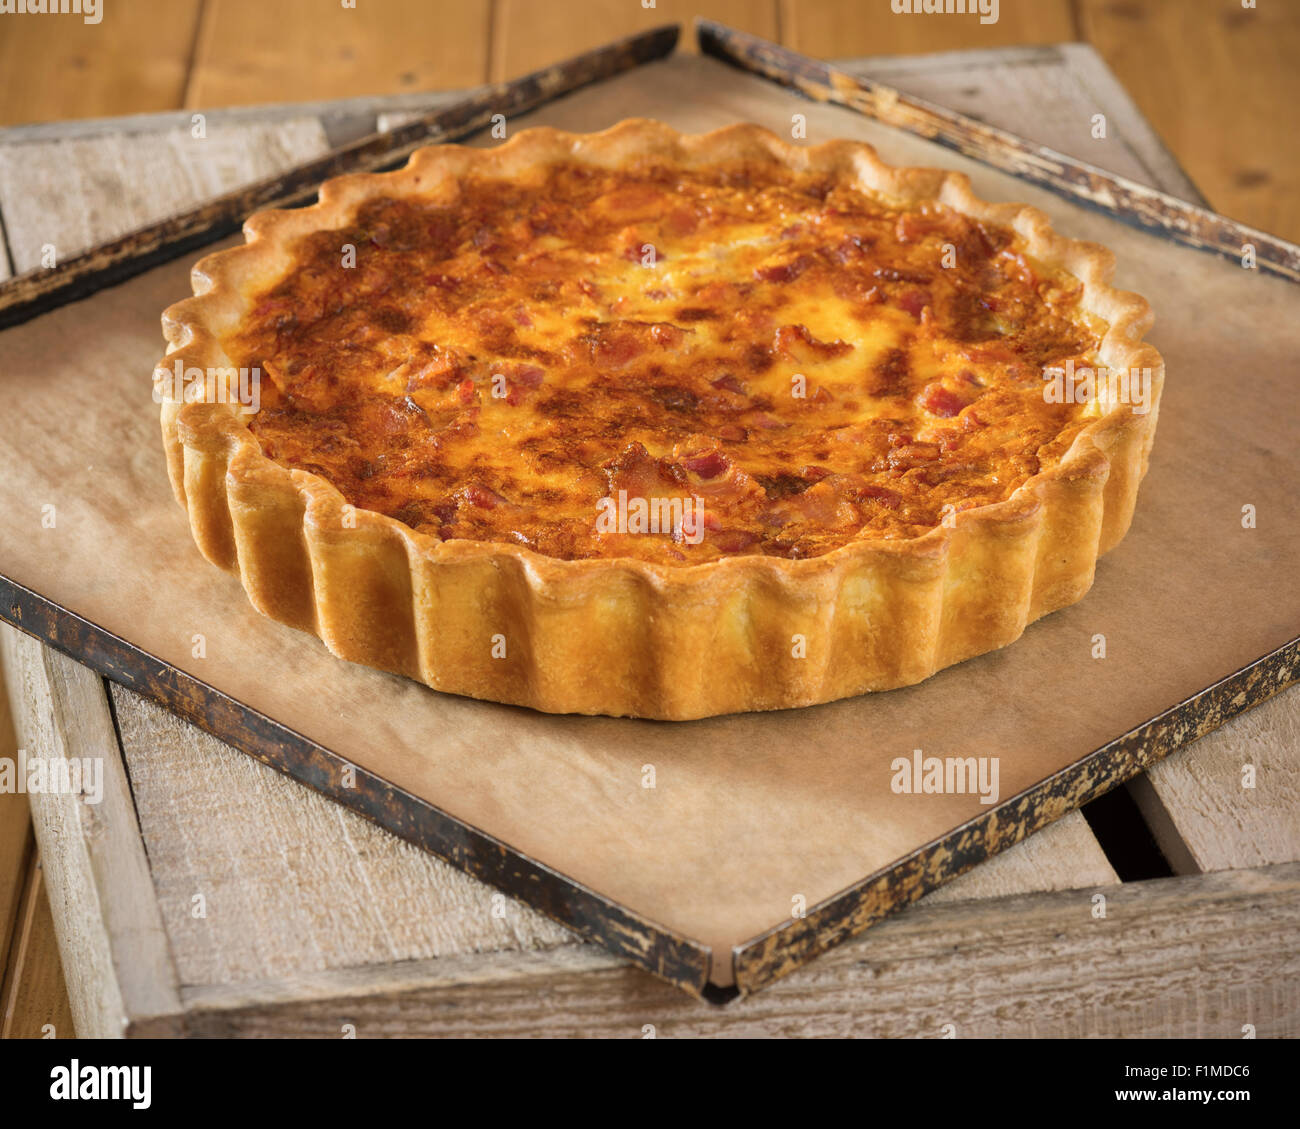 Quiche lorraine. French egg and bacon tart. France Food - Stock Image